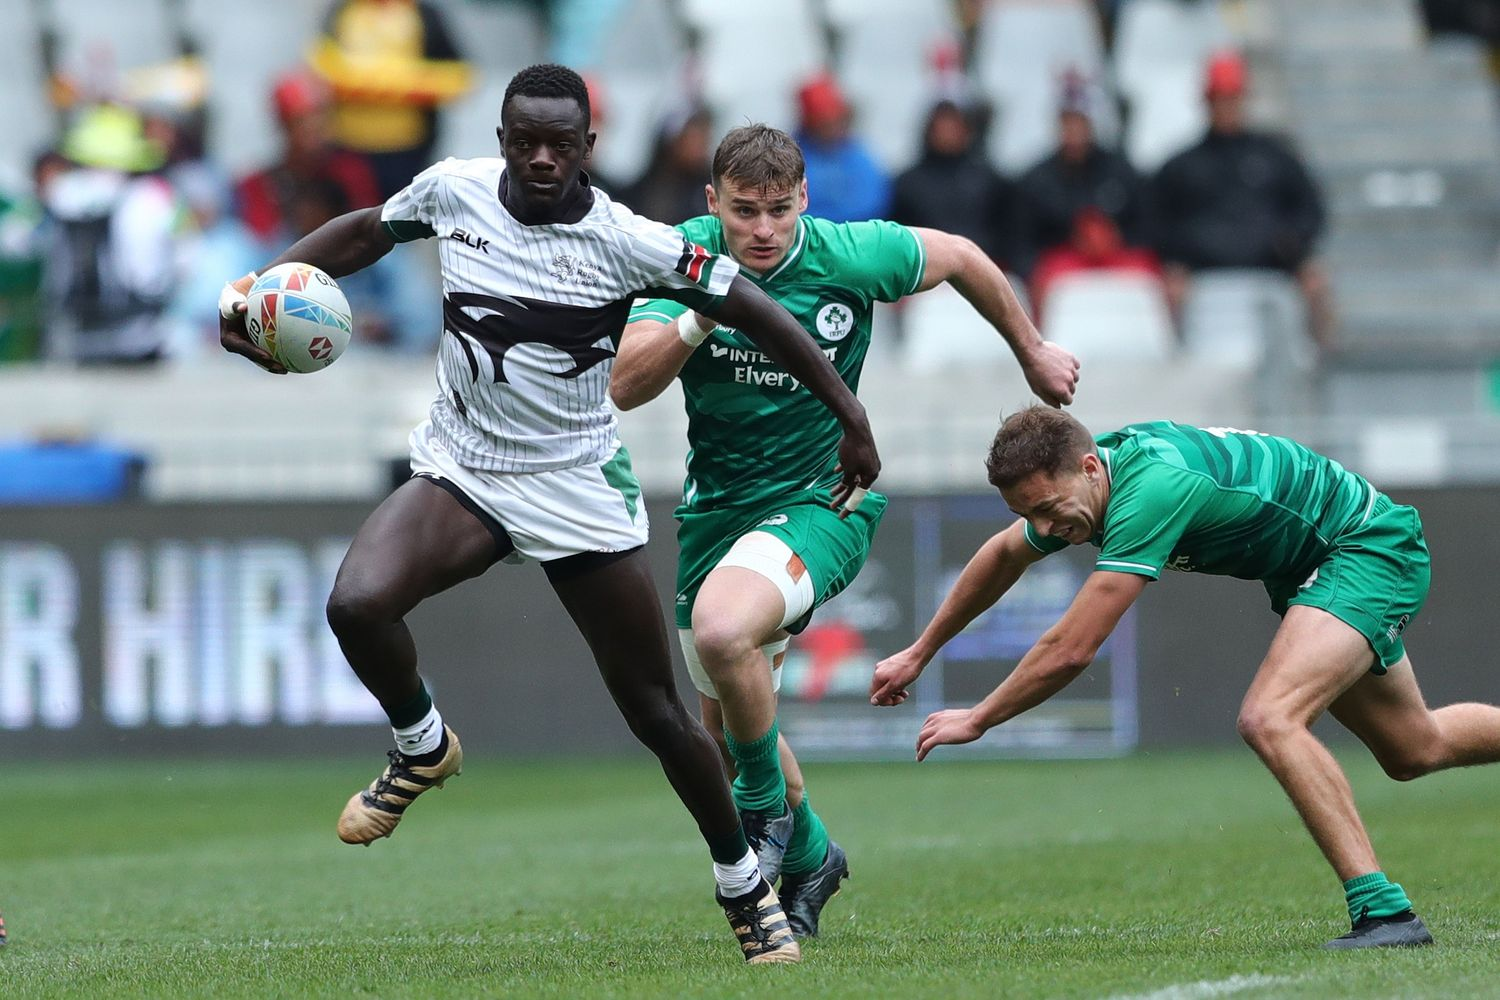 HSBC Cape Town Sevens 2019 -Men's